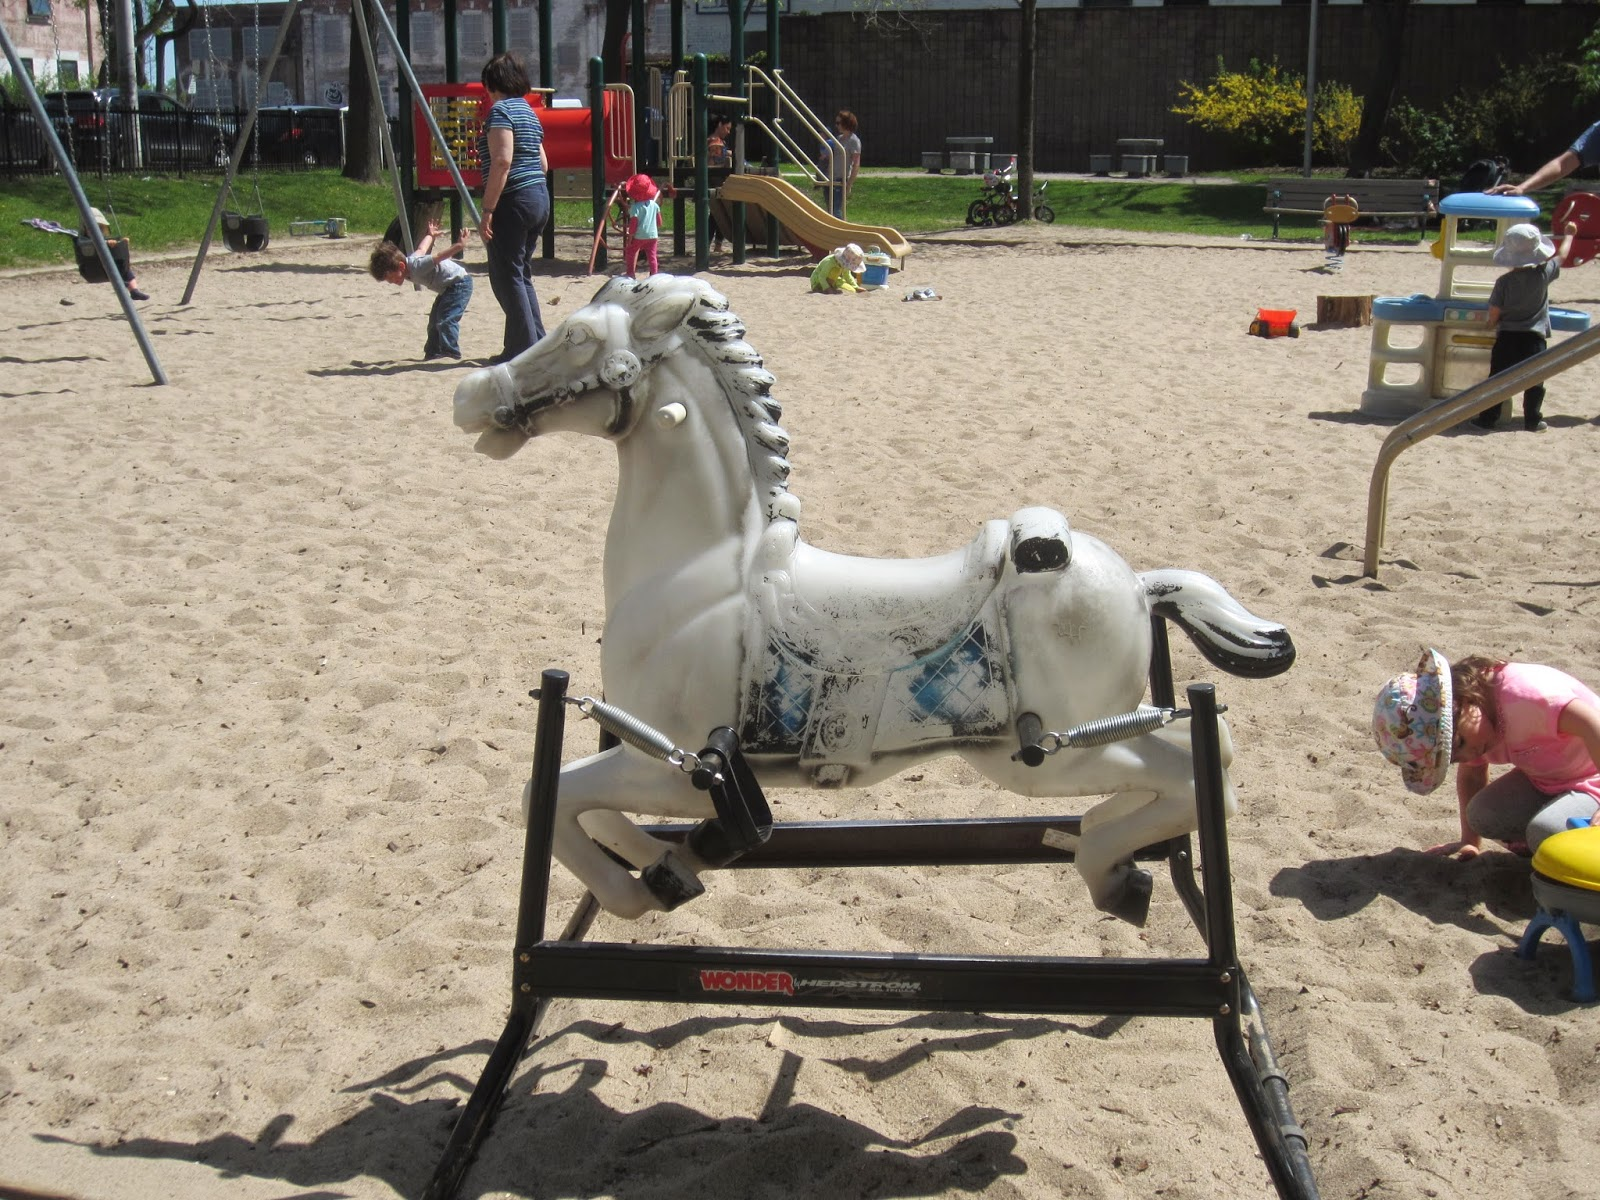 classic rocking horse, abandoned toys in a playground